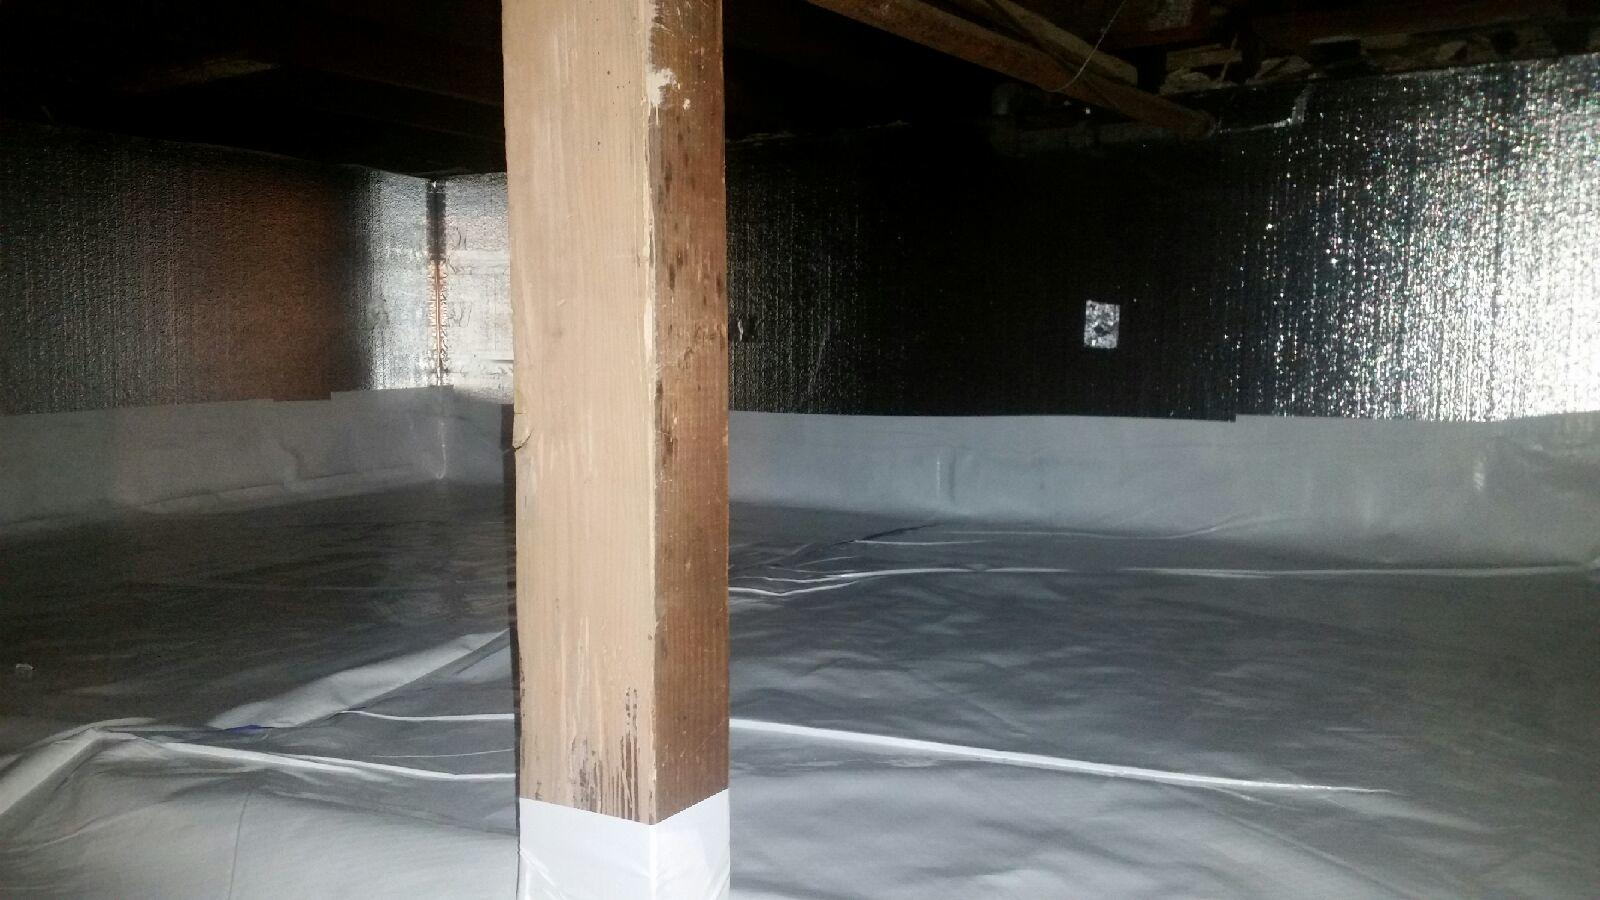 Crawlspace Insulation and Vapor Barrier for a Freeport Crawlspace - After Photo